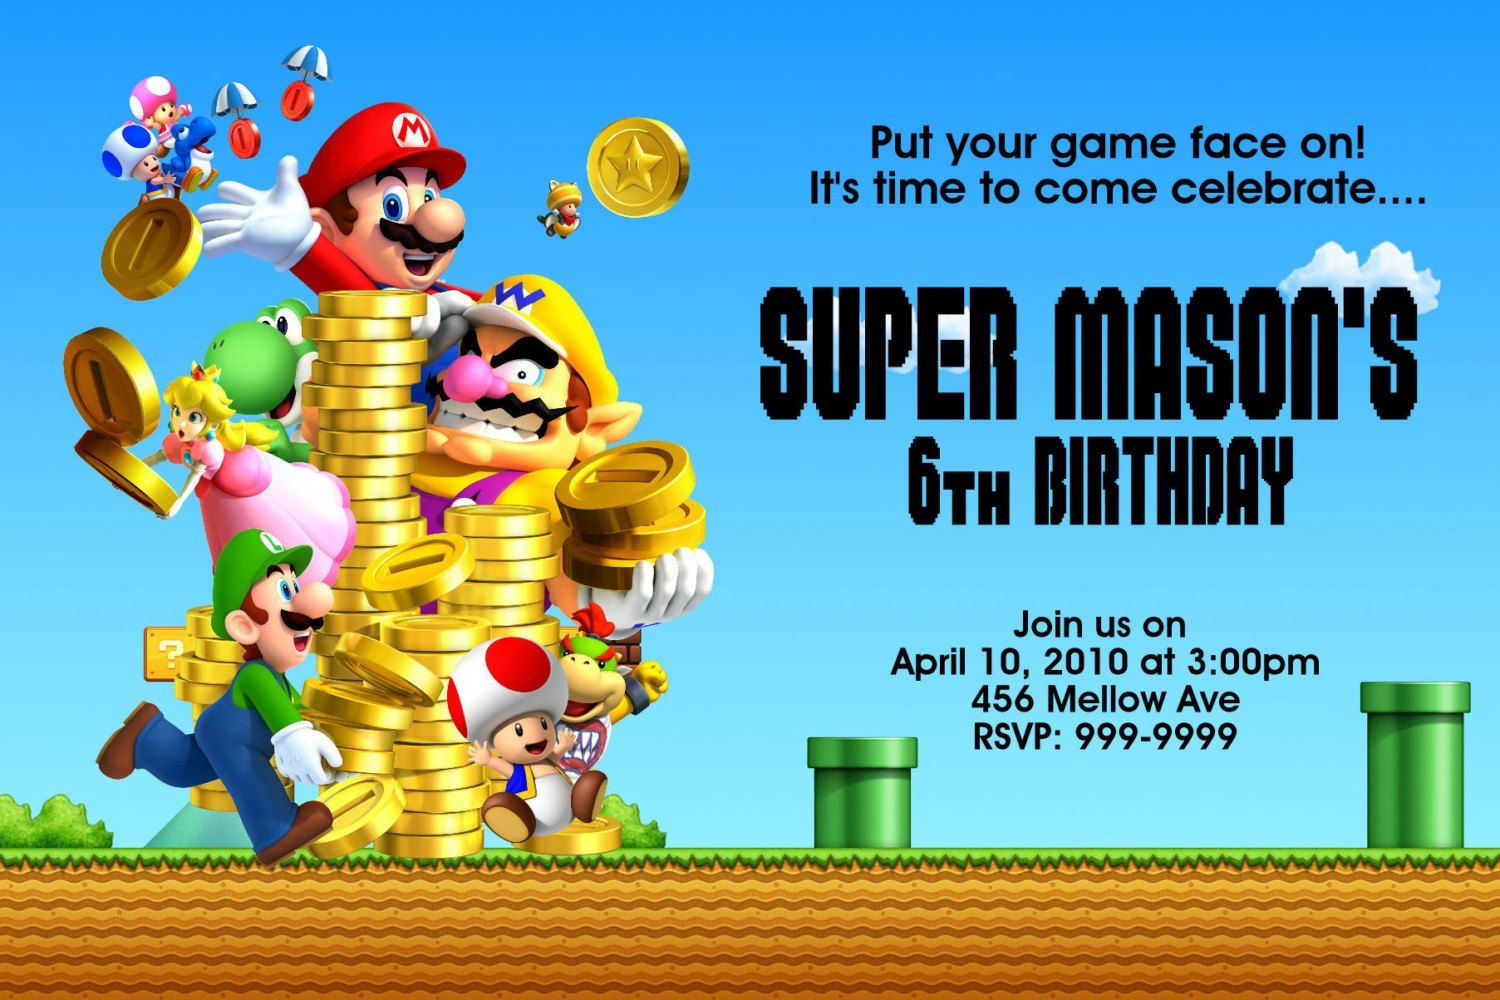 Super Mario Bros Birthday Invitations | Super mario bros, Mario bros ...